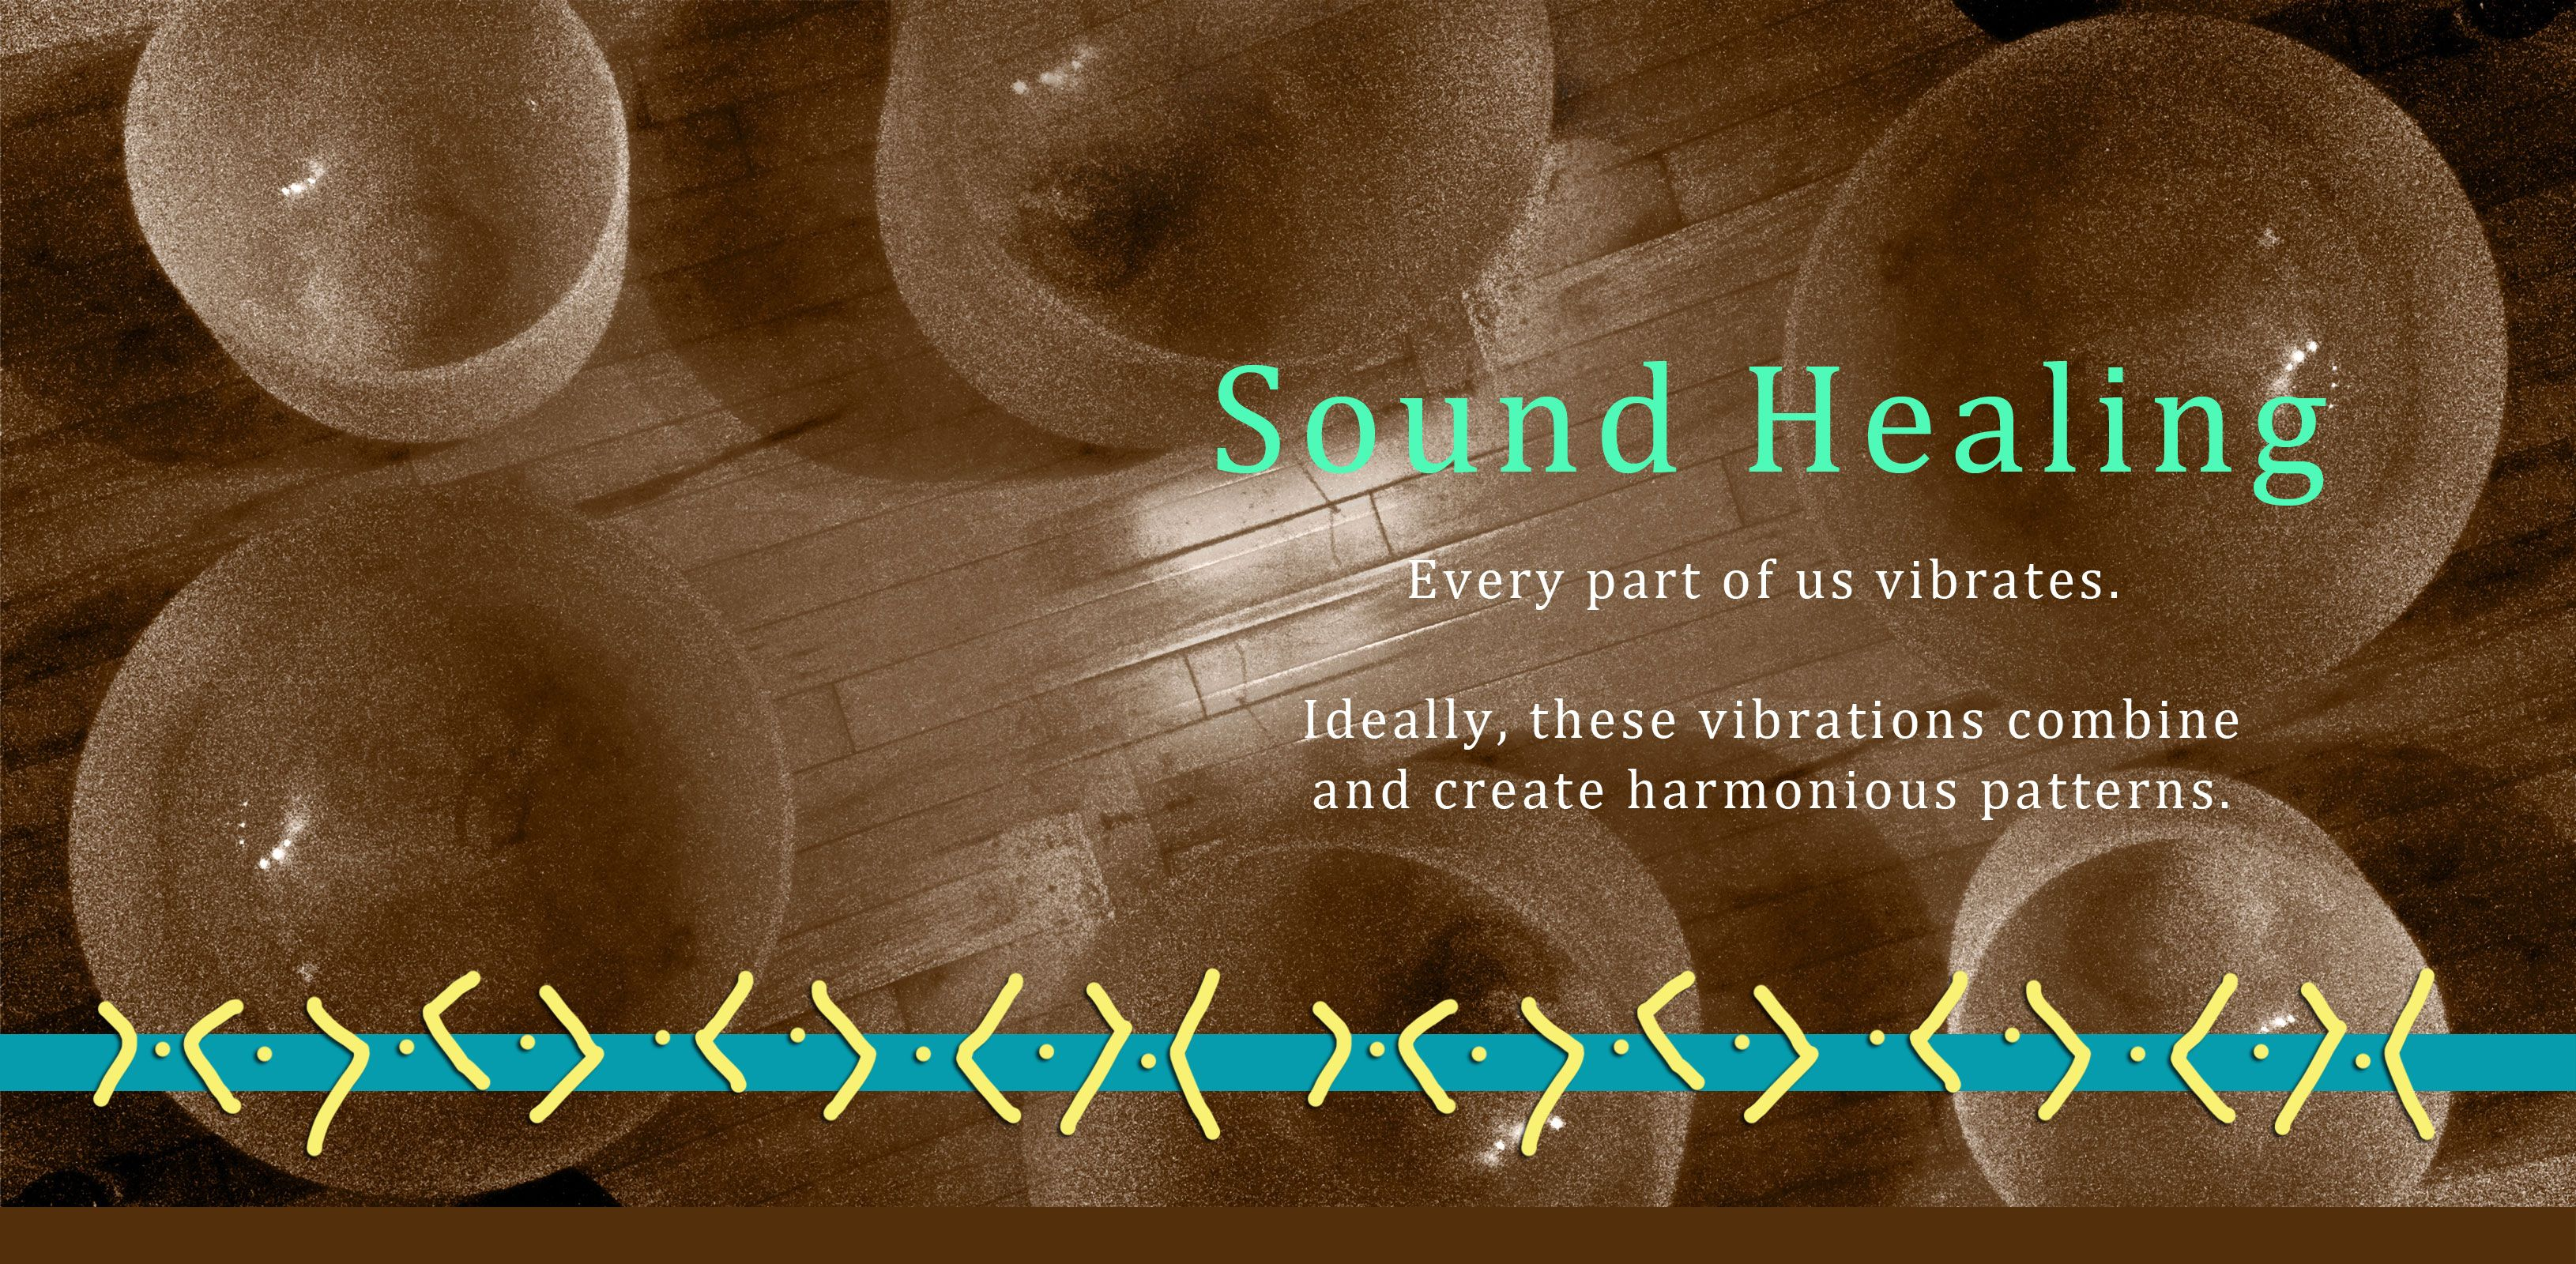 Maybe we could find a Sound Healing session to be done for all of us at your house?